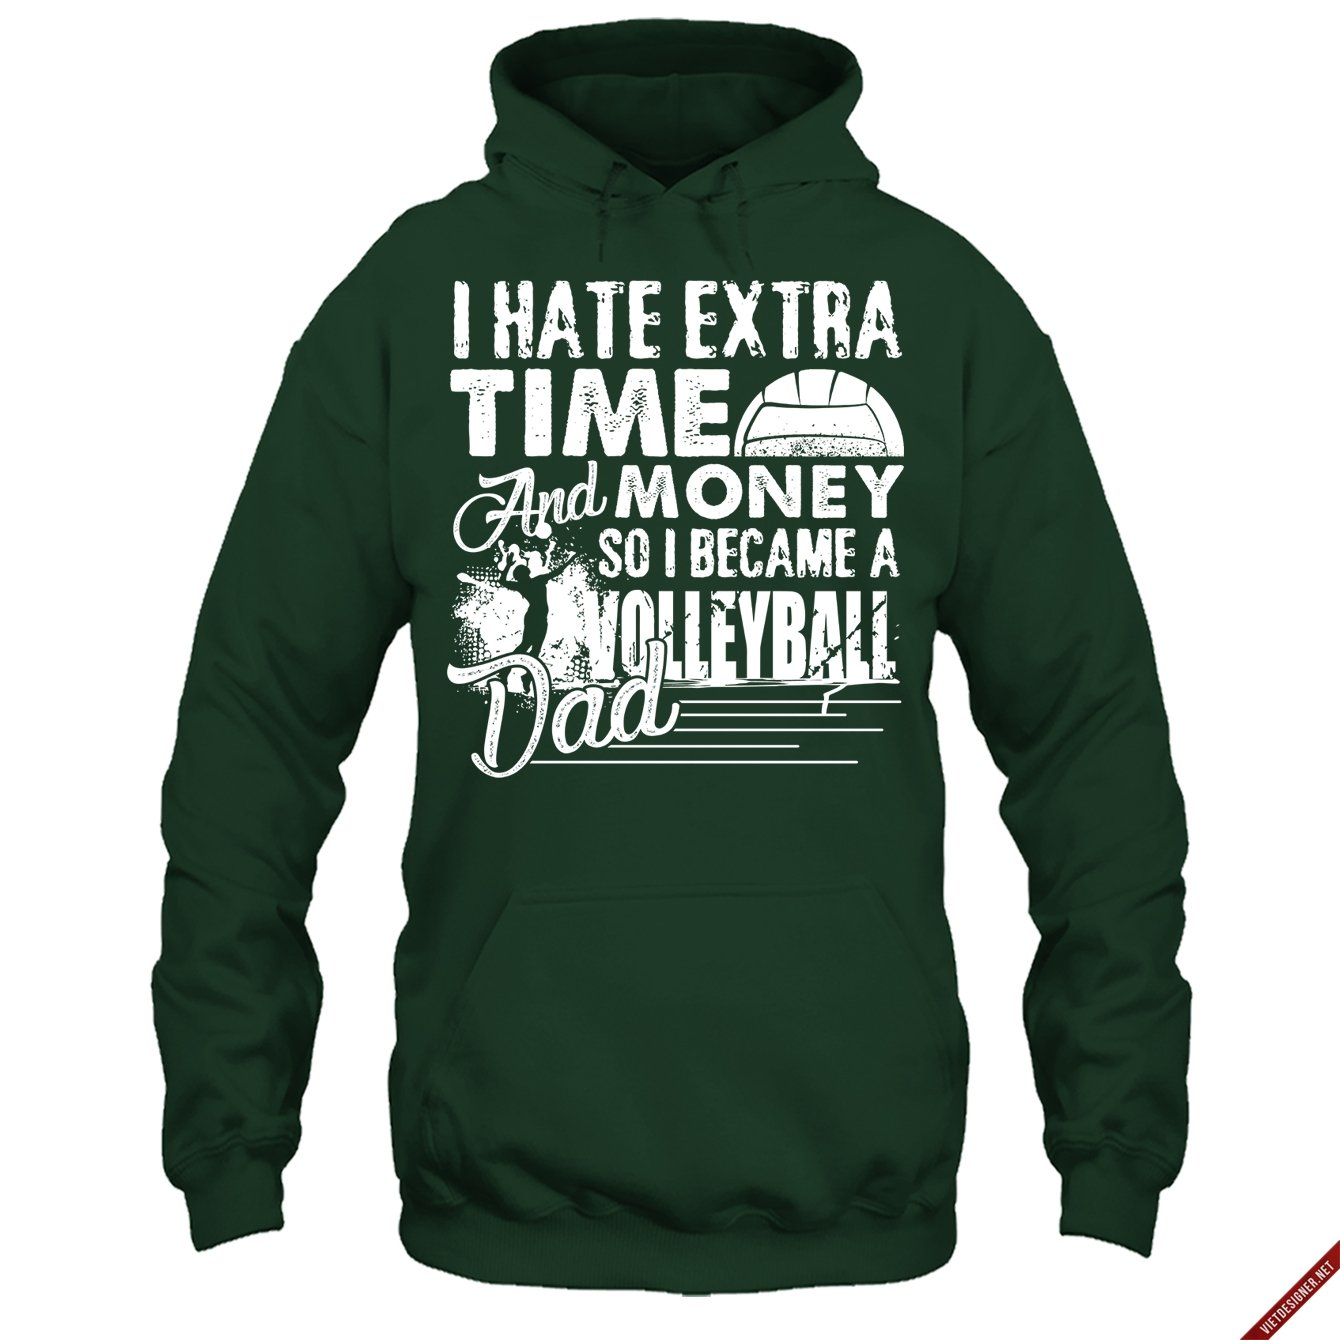 Volleyball Tshirt Design Became A Volleyball Dad T Shirt Amazon